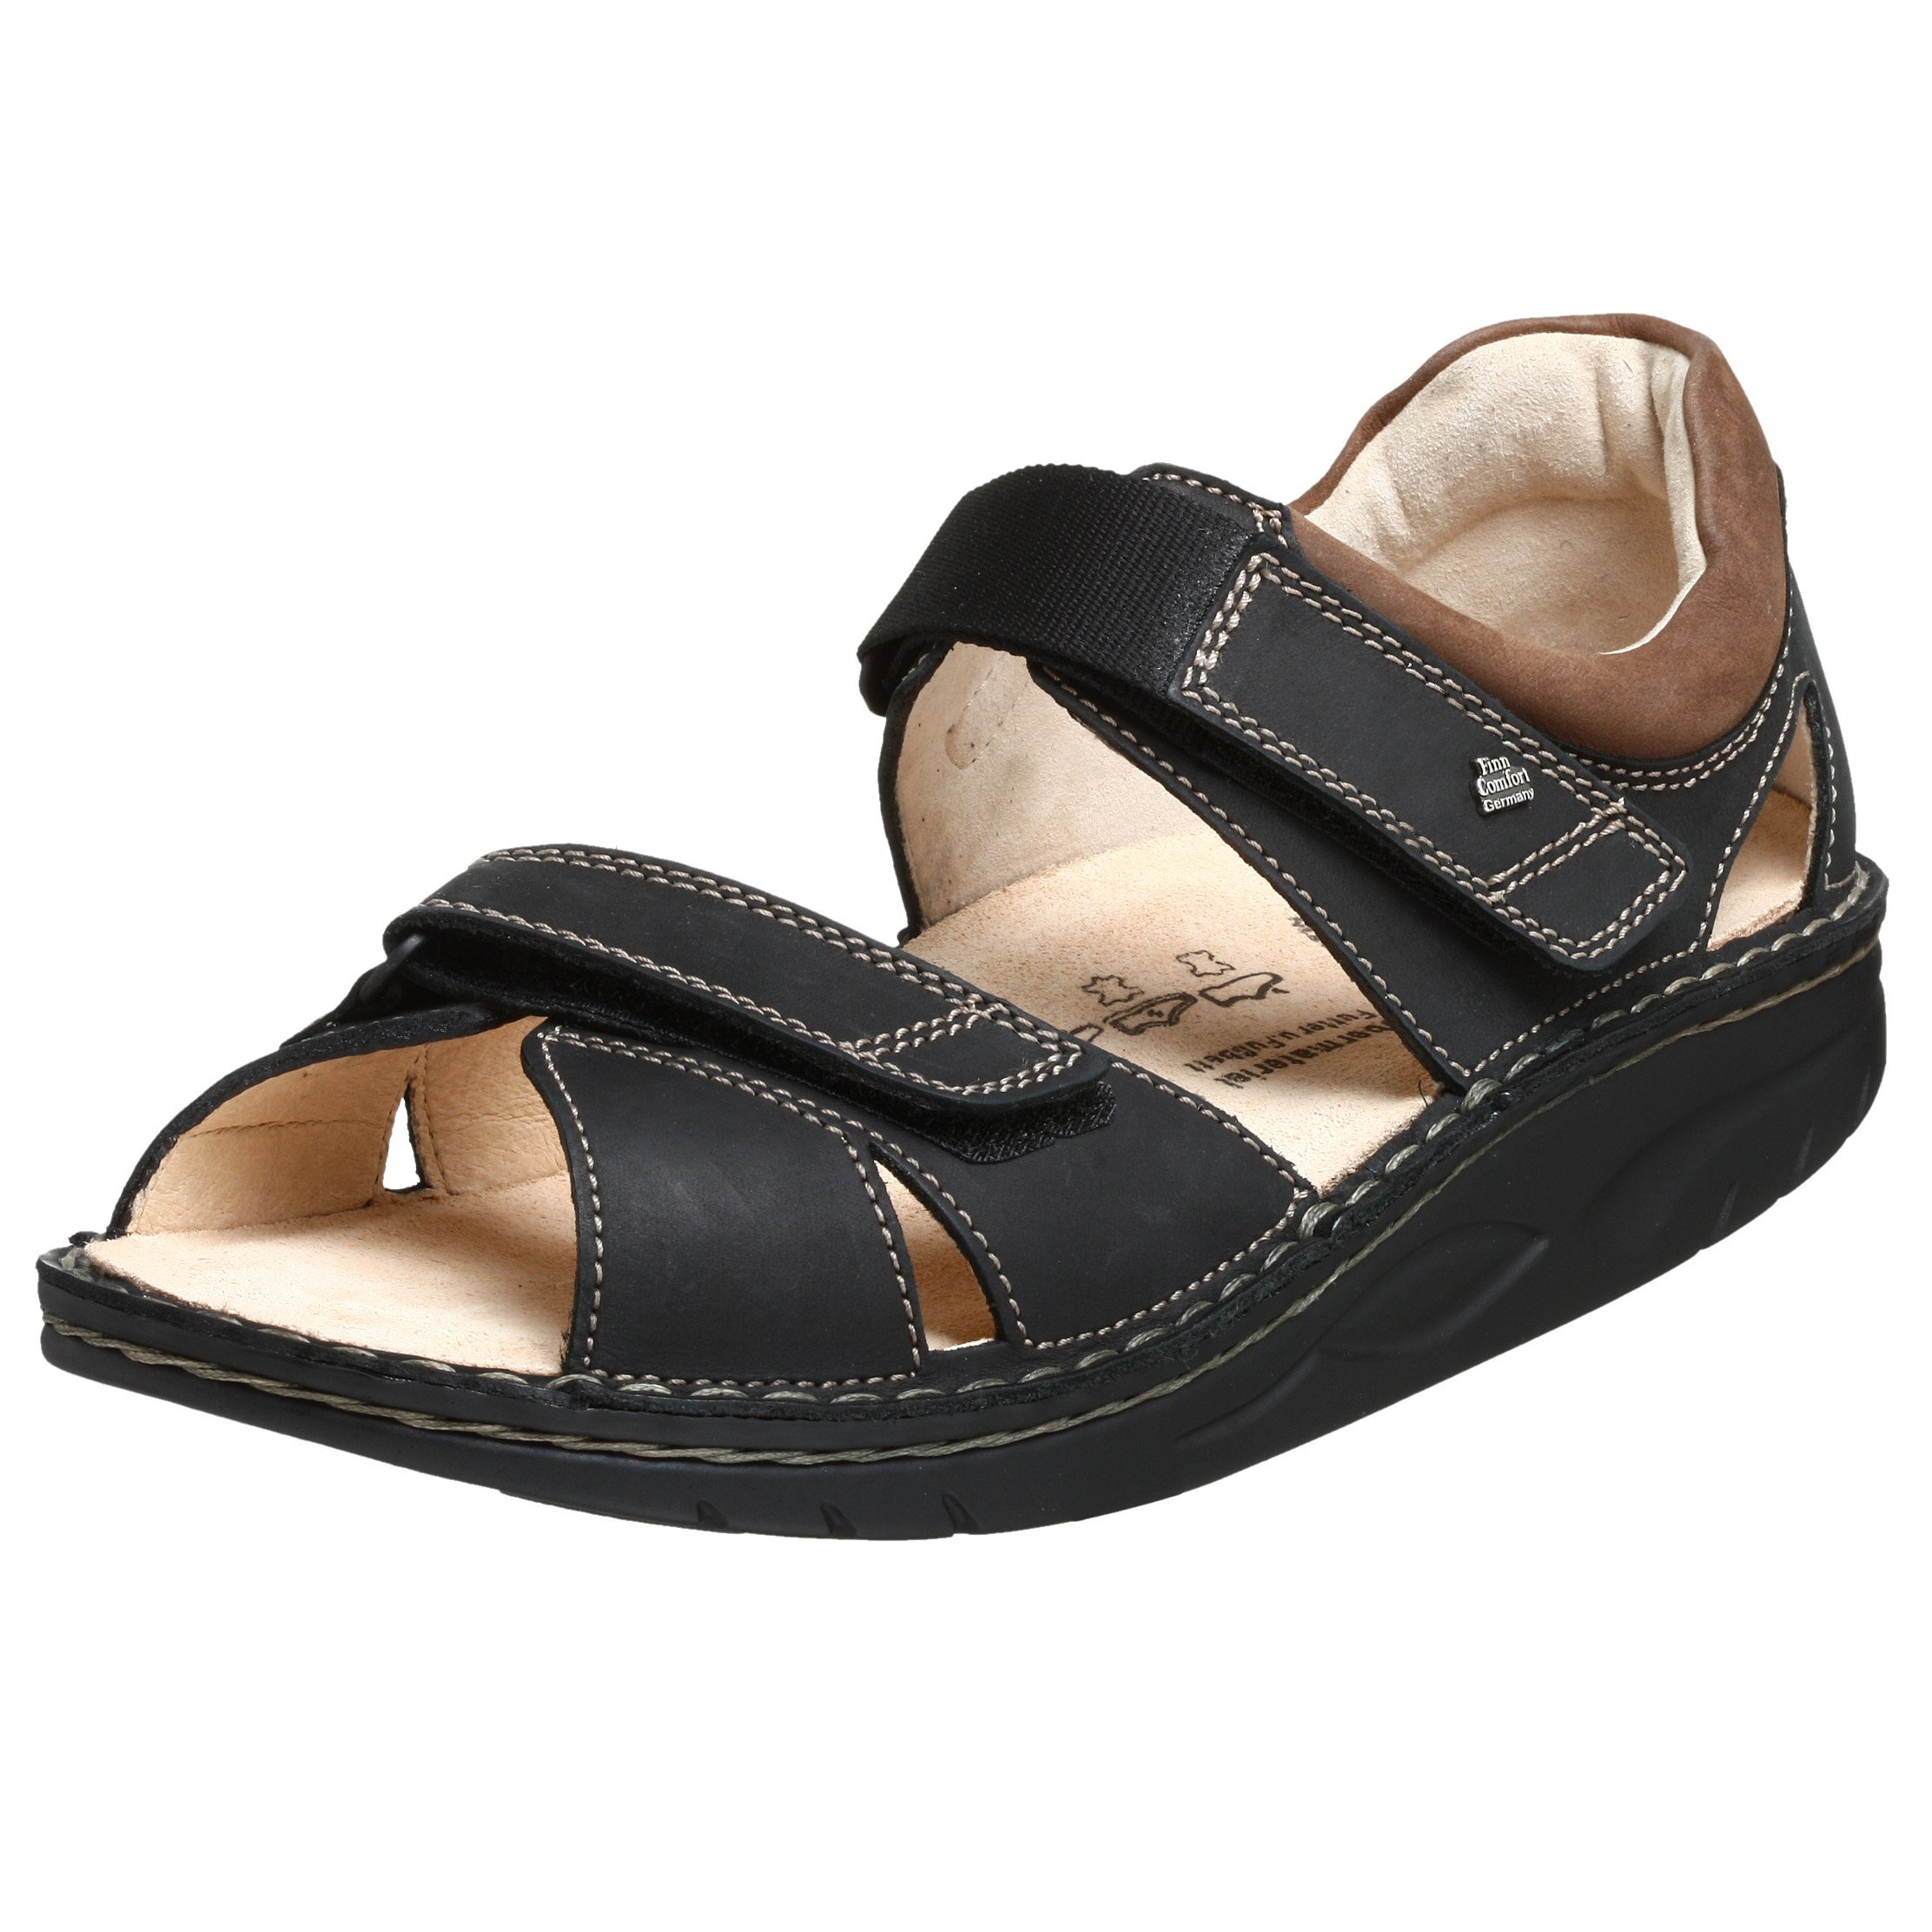 Finn Comfort Men's Samara Sandals,Black/Havanna Buggy,38 M EU by Finn Comfort